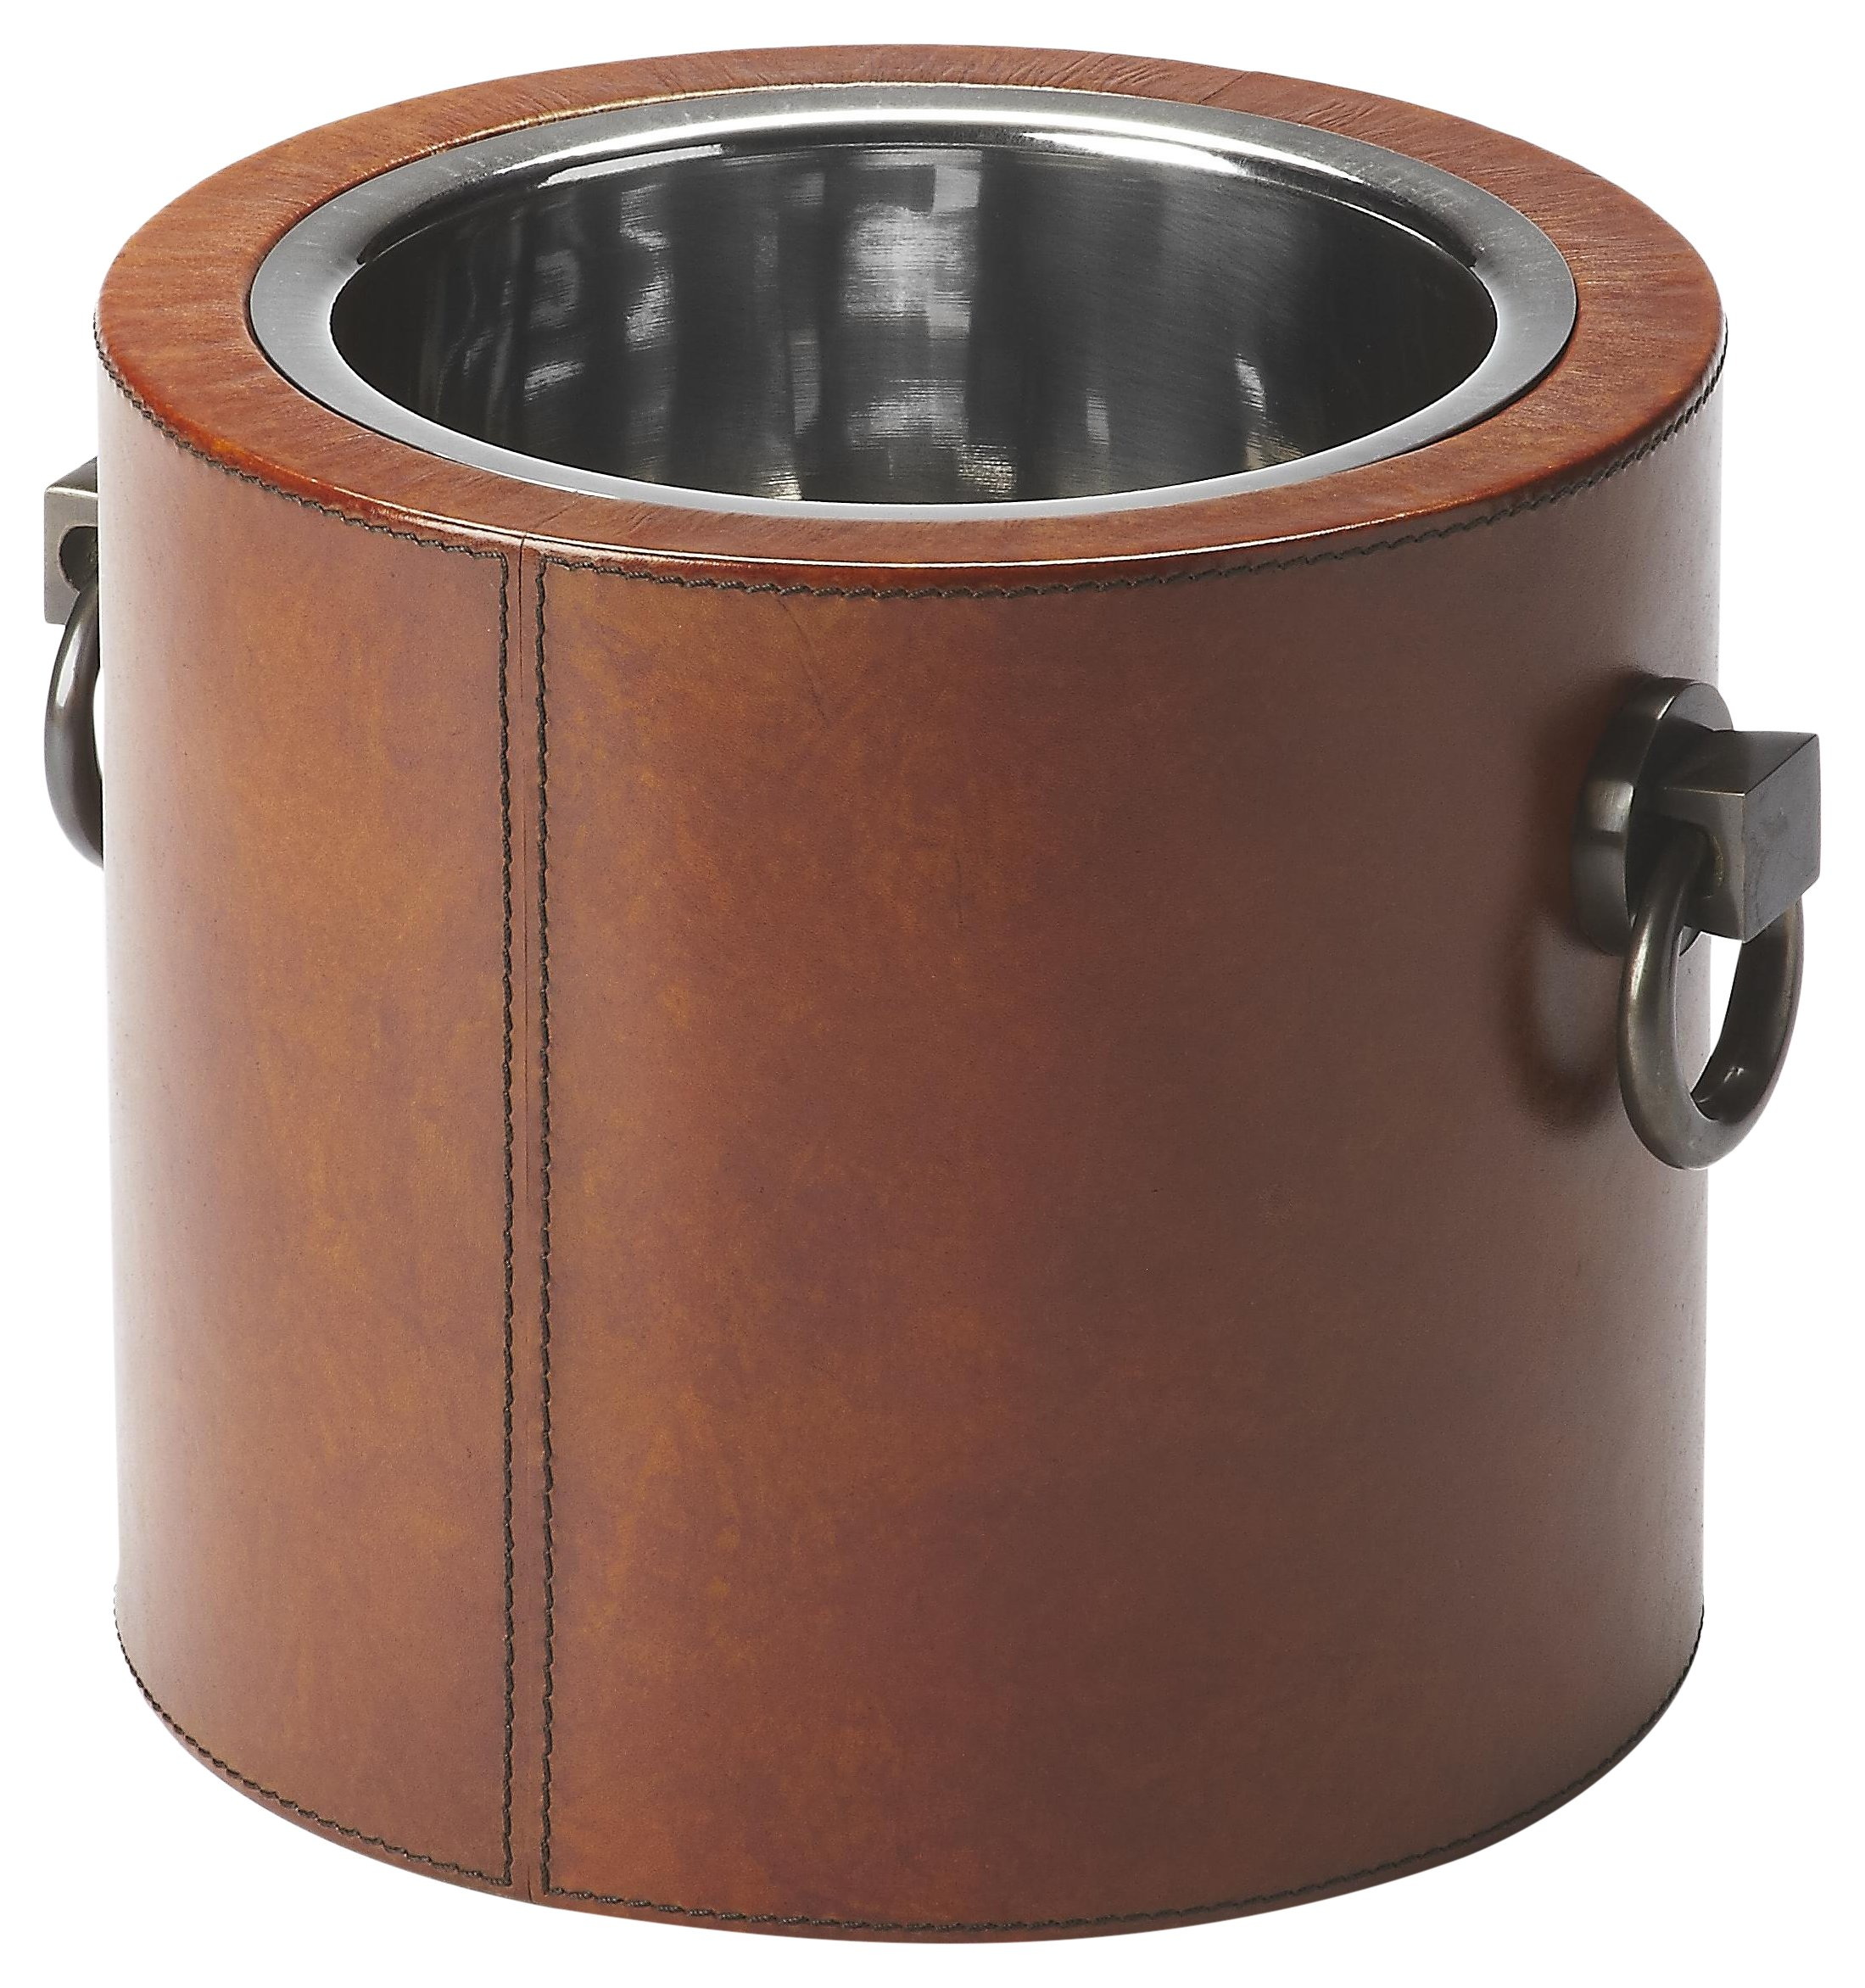 Butler Specialty Company 3576016 Wine Cooler Leather, Brown